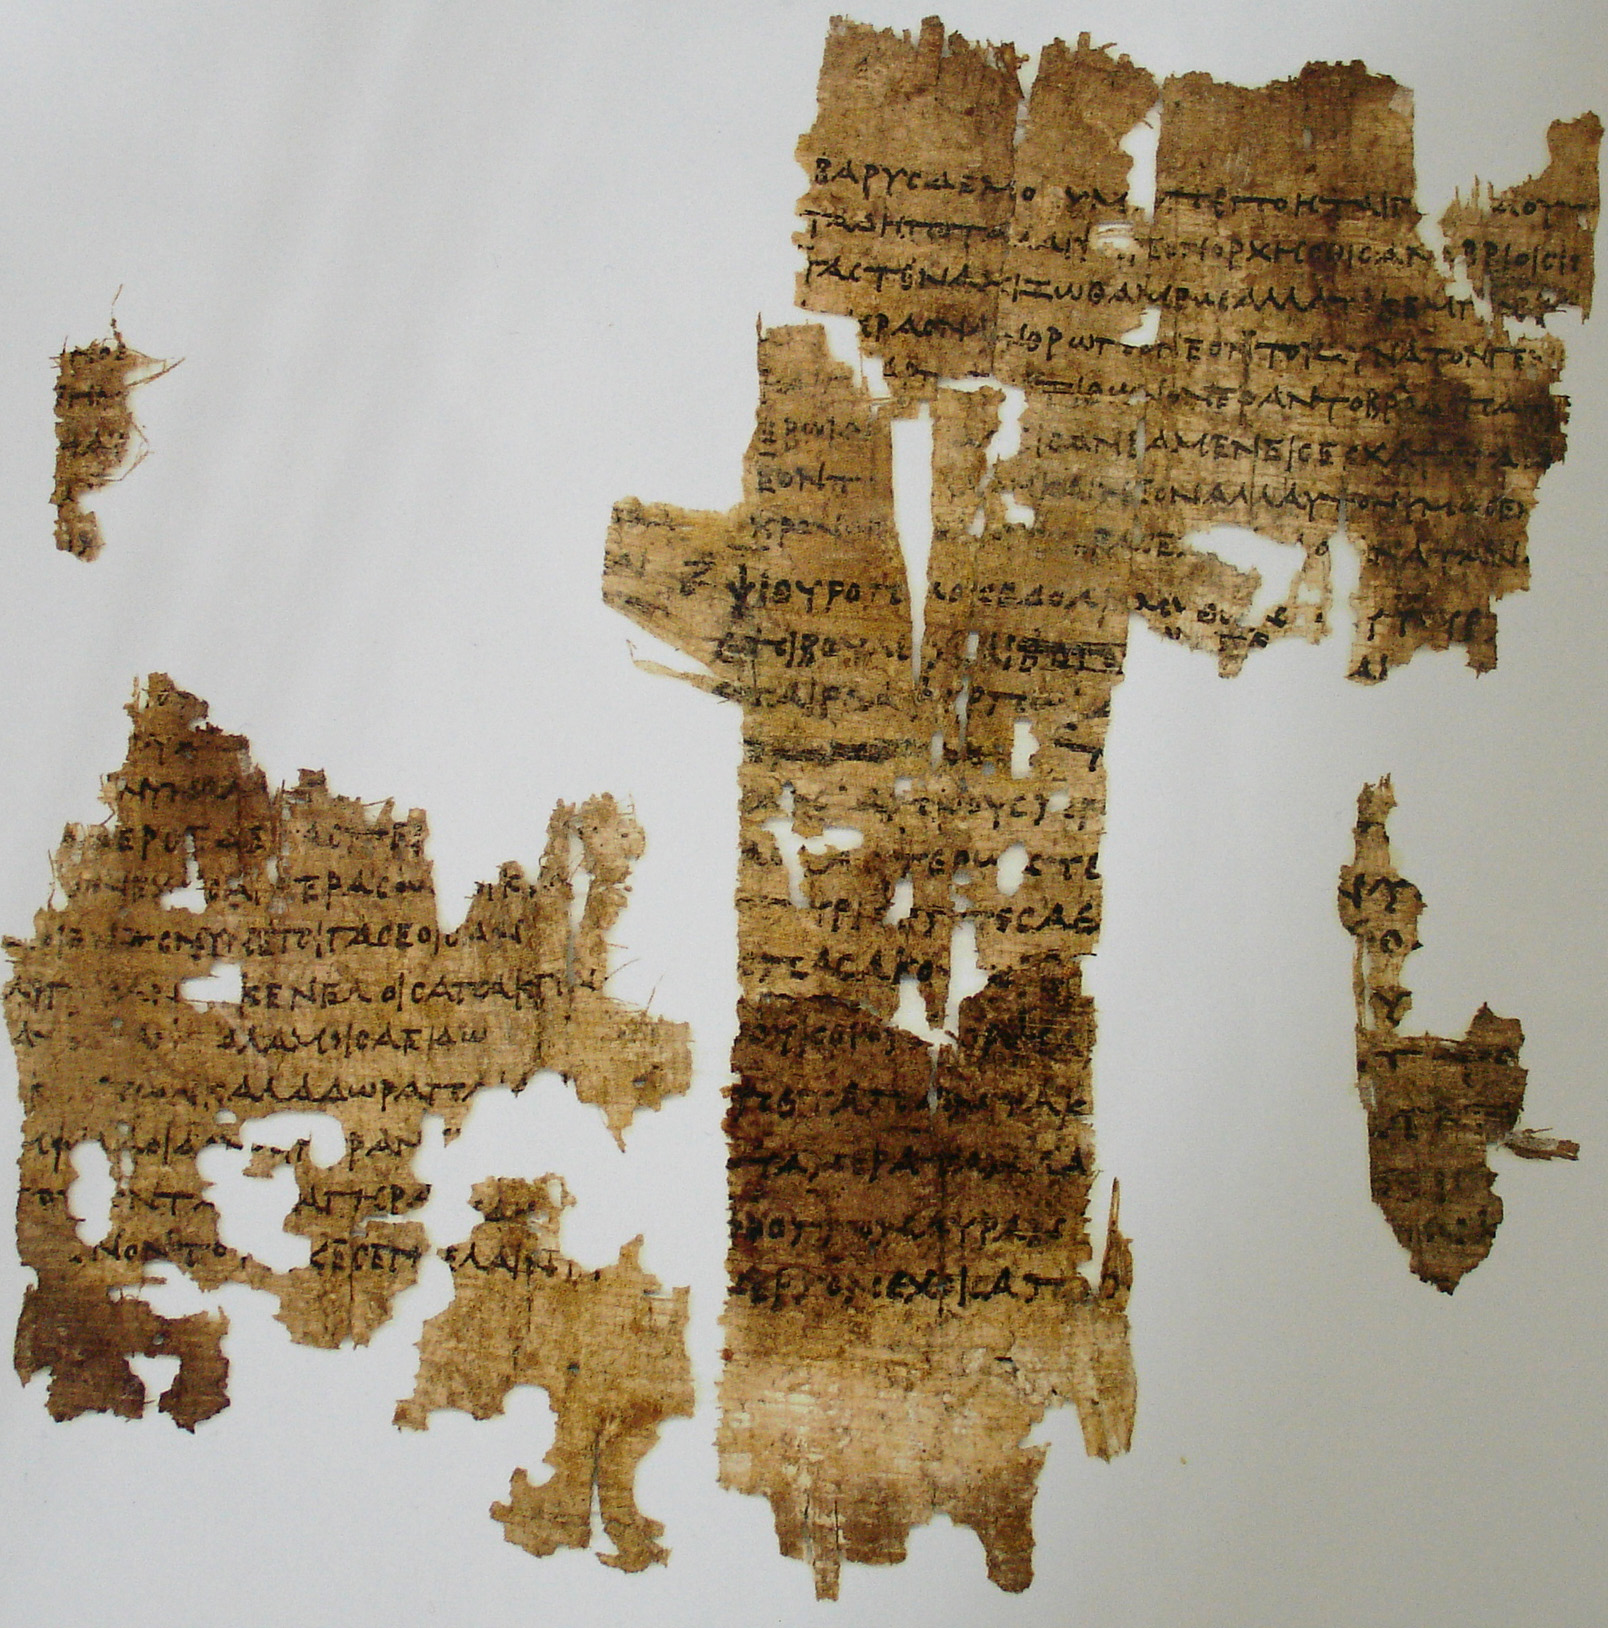 Most of Sappho's poetry is preserved in manuscripts of other ancient writers or on papyrus fragments, but part of one poem survives on a potsherd.